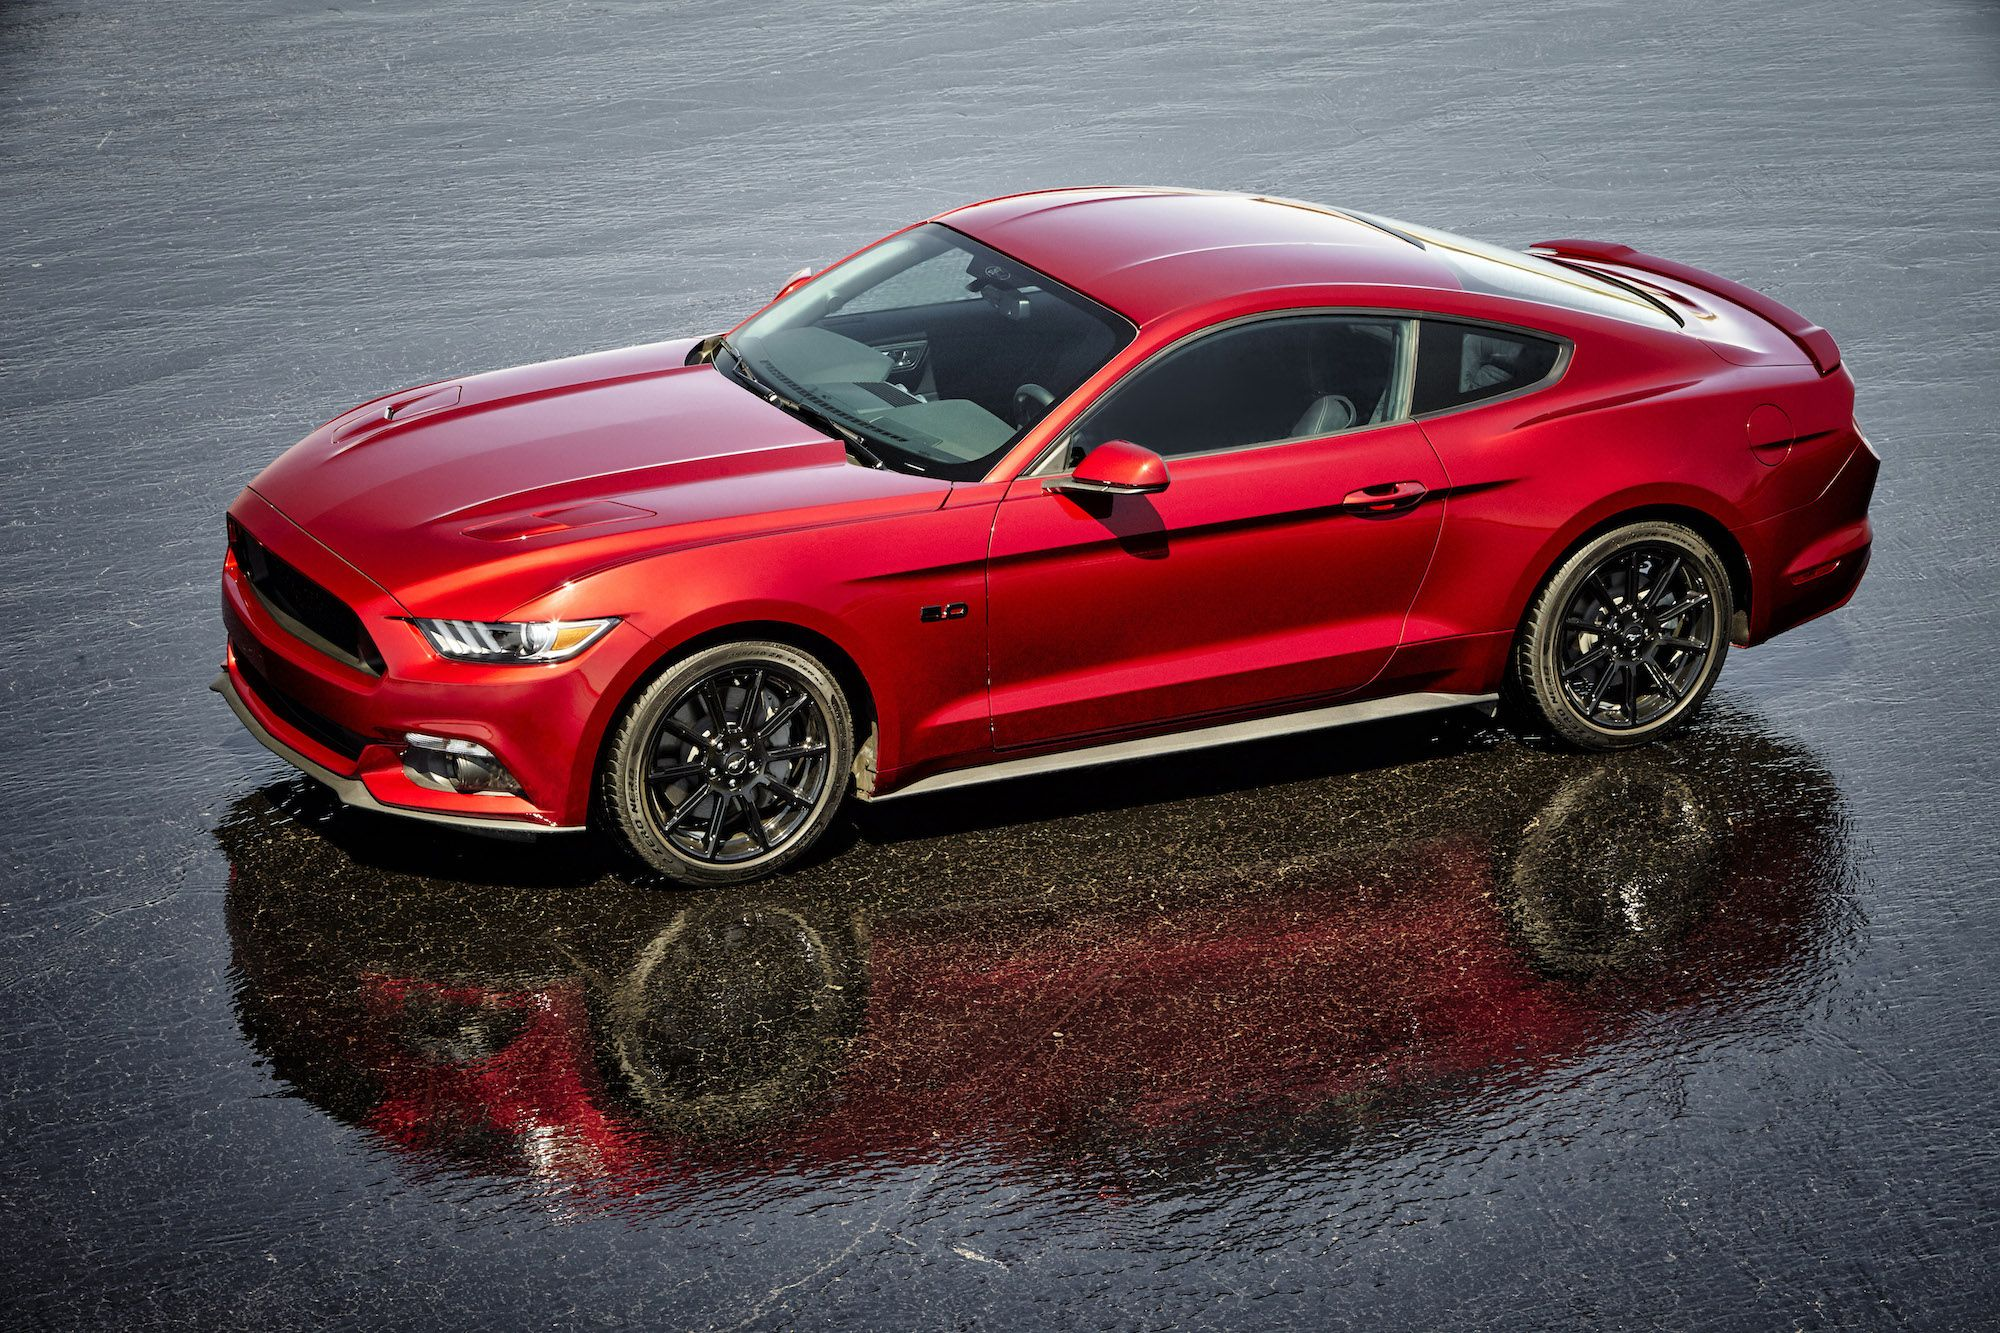 2016 ford mustang gt features two throwback trims california special and pony packages